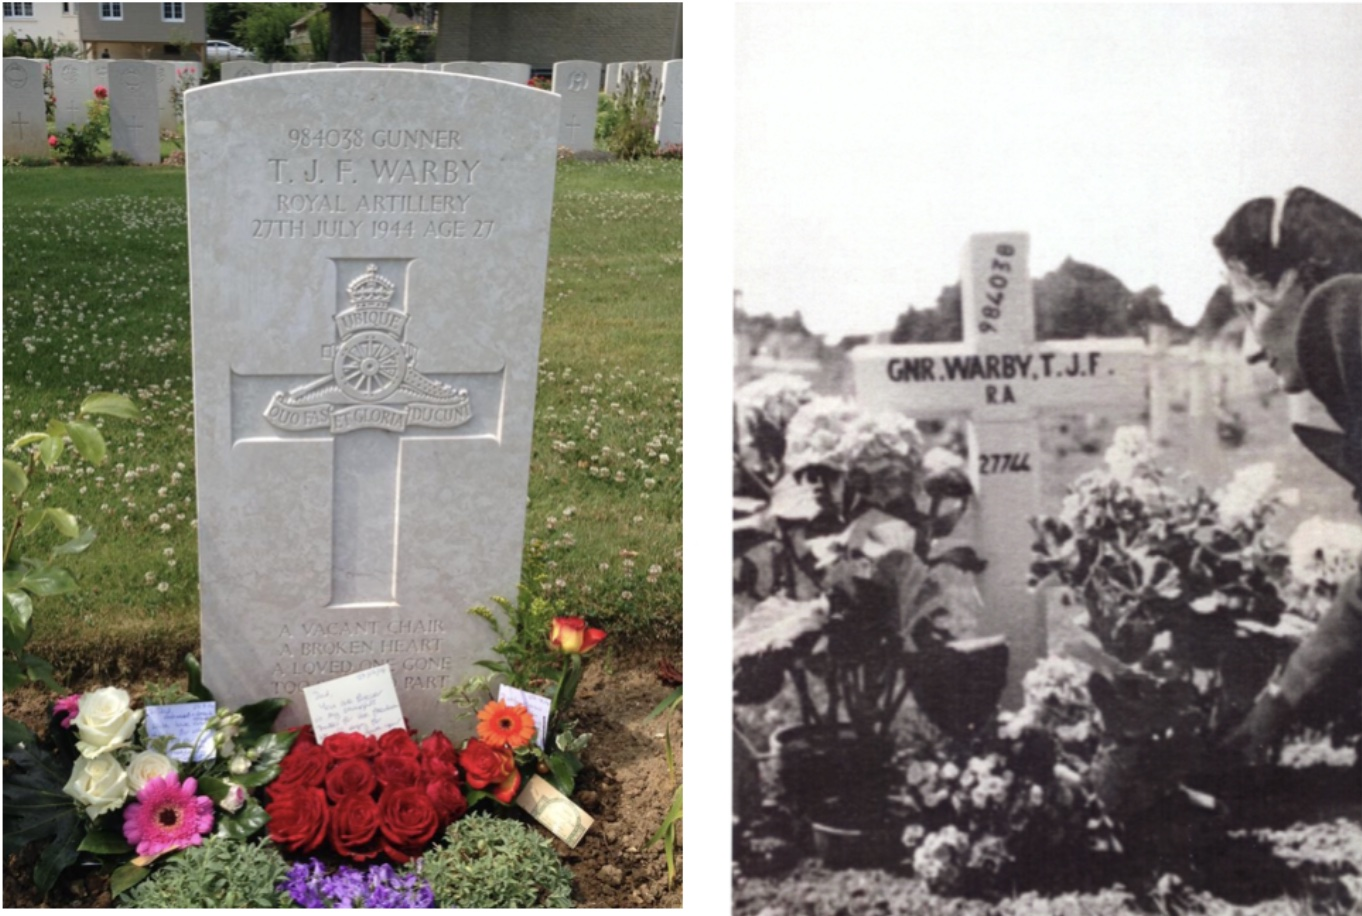 Two pictures - Thomas' gravestone and Thomas' mother visiting the grave